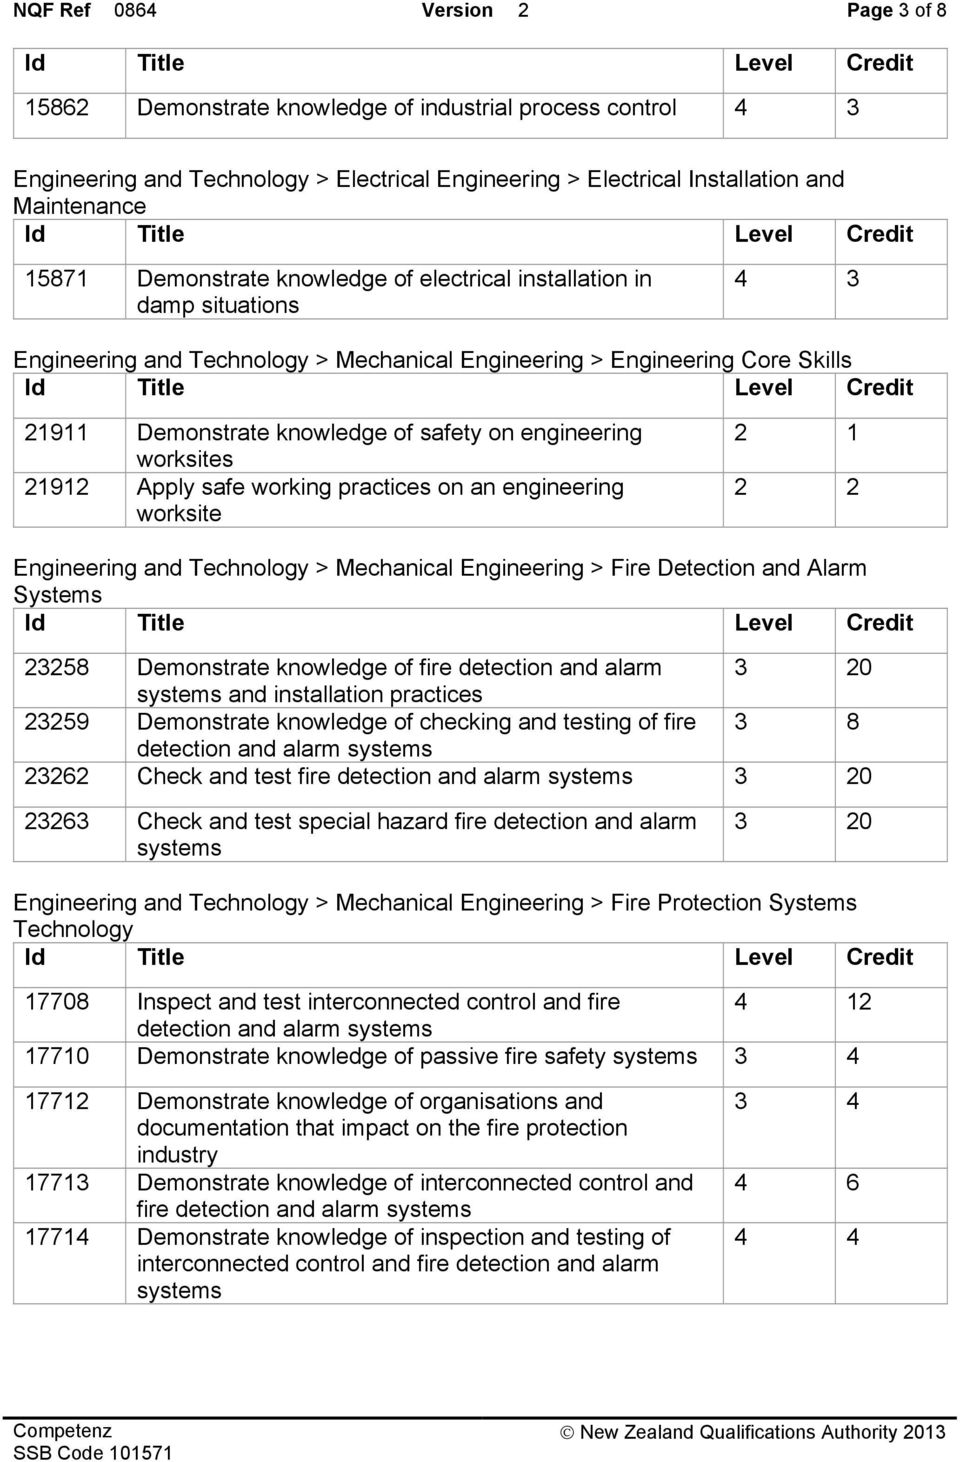 engineering worksites 21912 Apply safe working practices on an engineering worksite 2 1 2 2 Engineering and Technology > Mechanical Engineering > Fire Detection and Alarm Systems 23258 Demonstrate